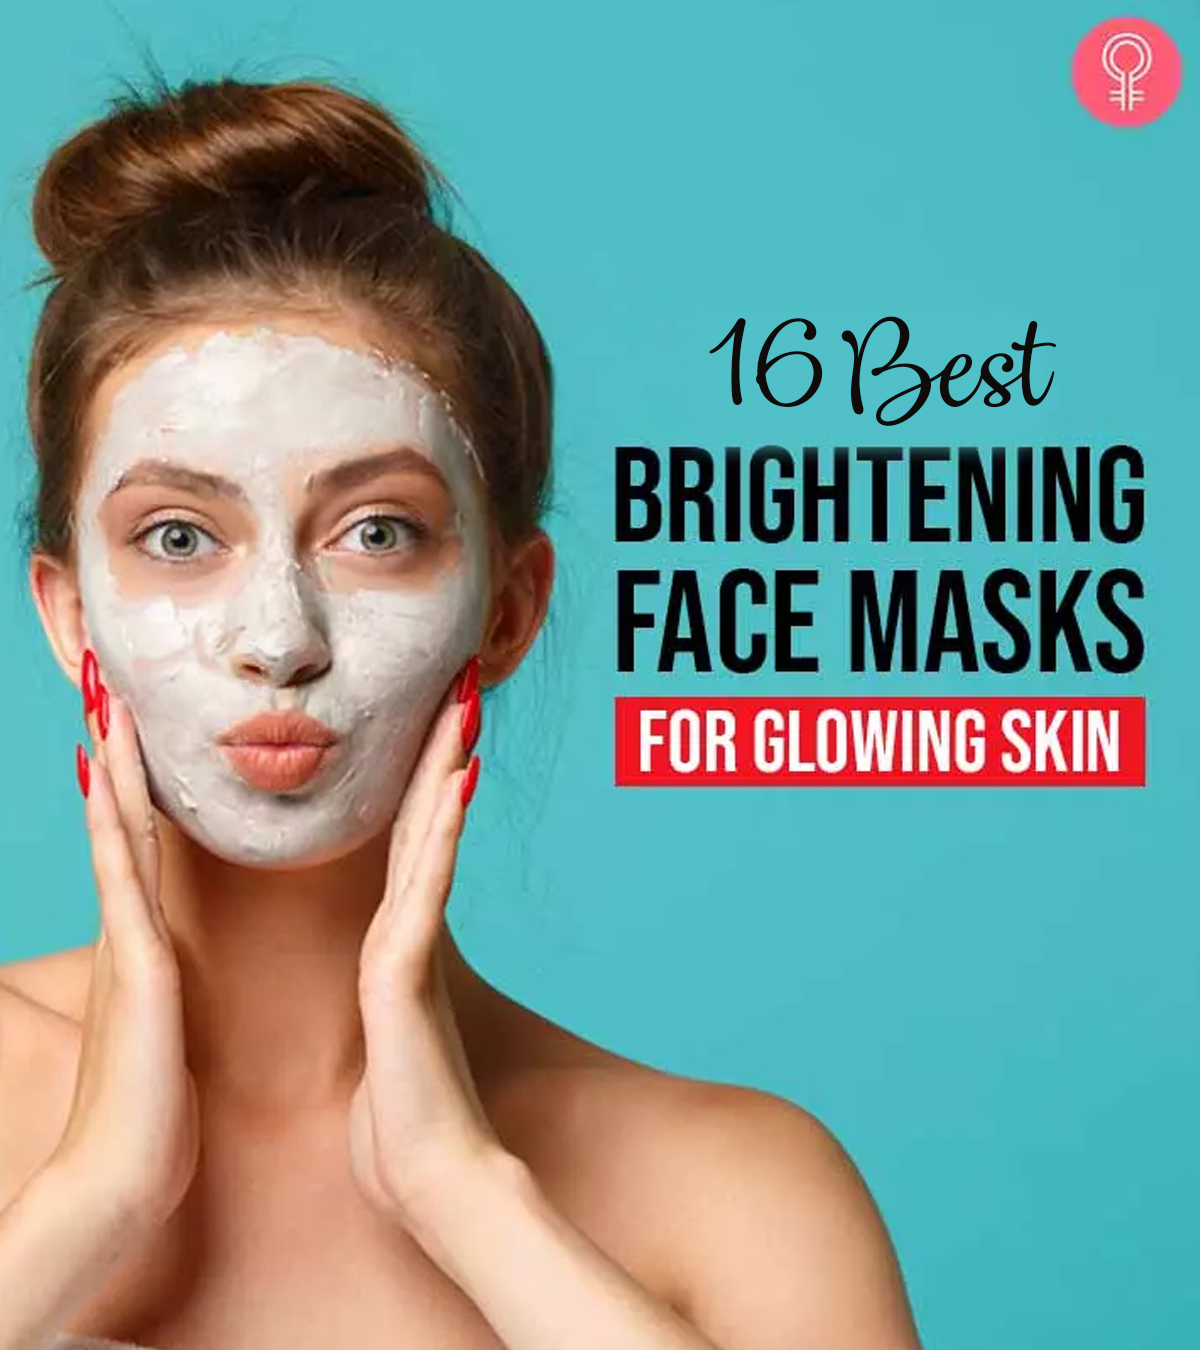 16 Best Brightening Face Masks For Glowing Skin